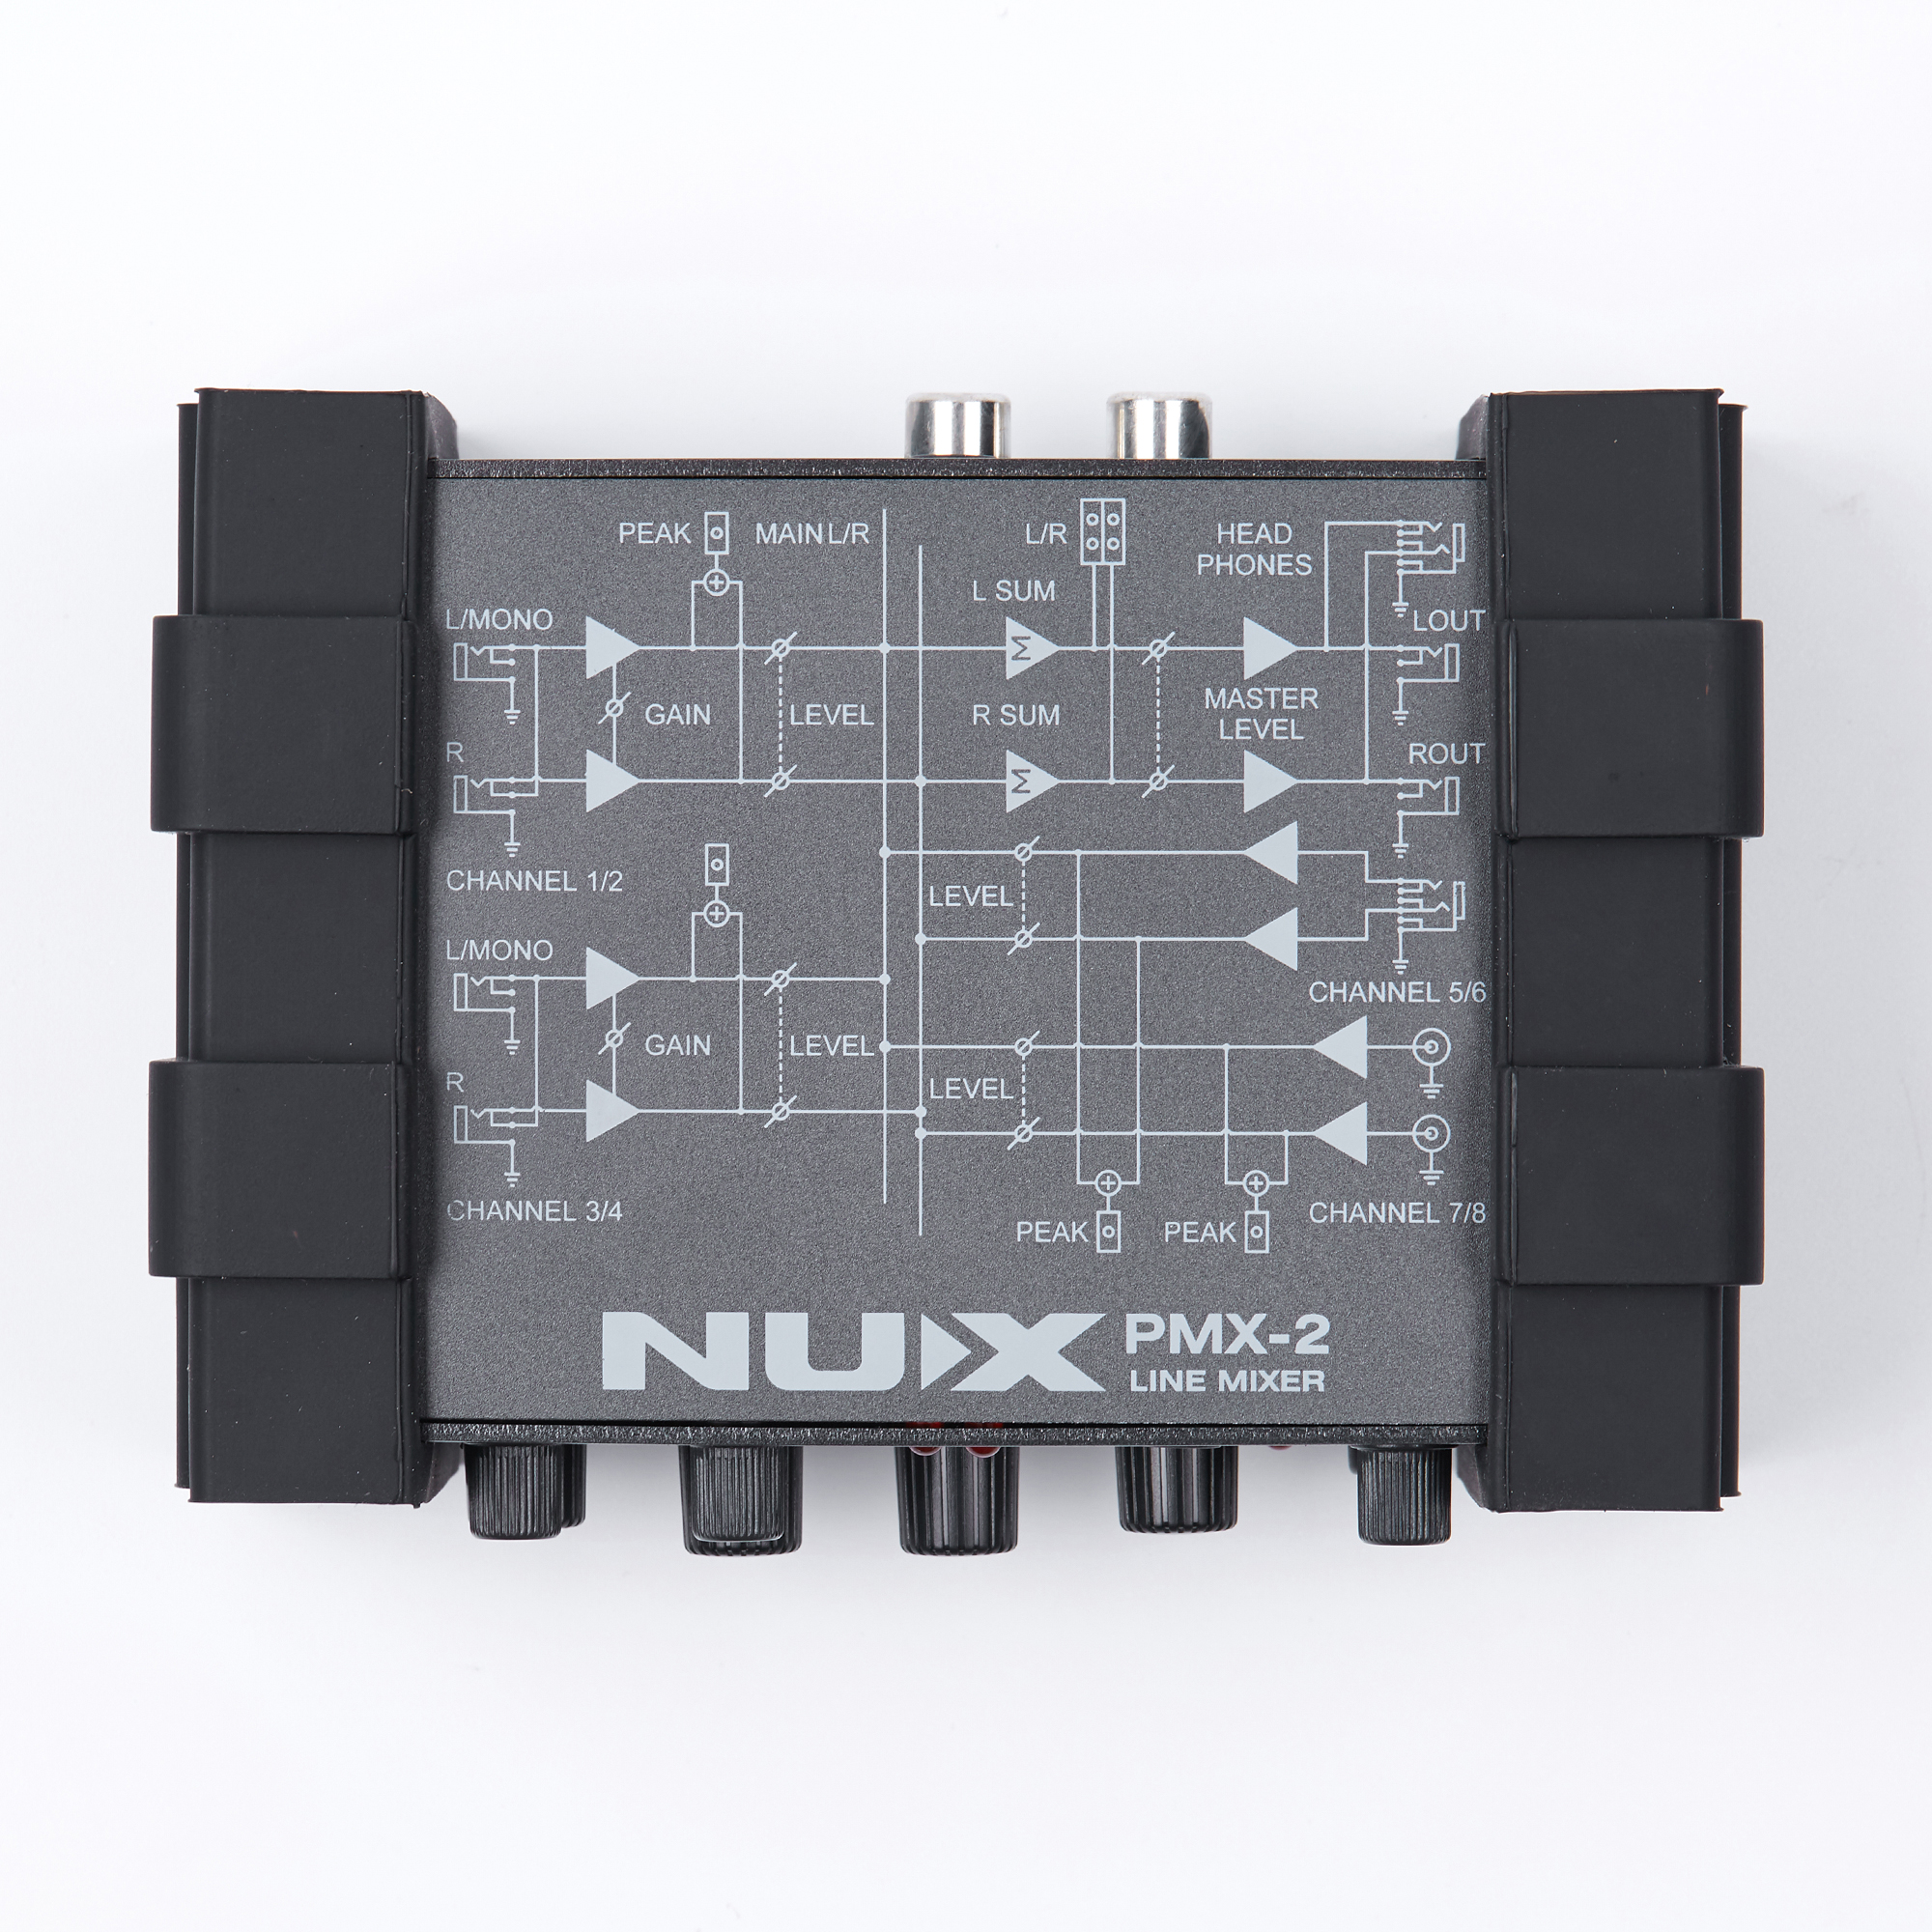 Gain Control 8 Inputs and 2 Outputs NUX PMX-2 Multi-Channel Mini Mixer 30 Musical Instruments Accessories for Guitar Bass Player concise history of the language sciences